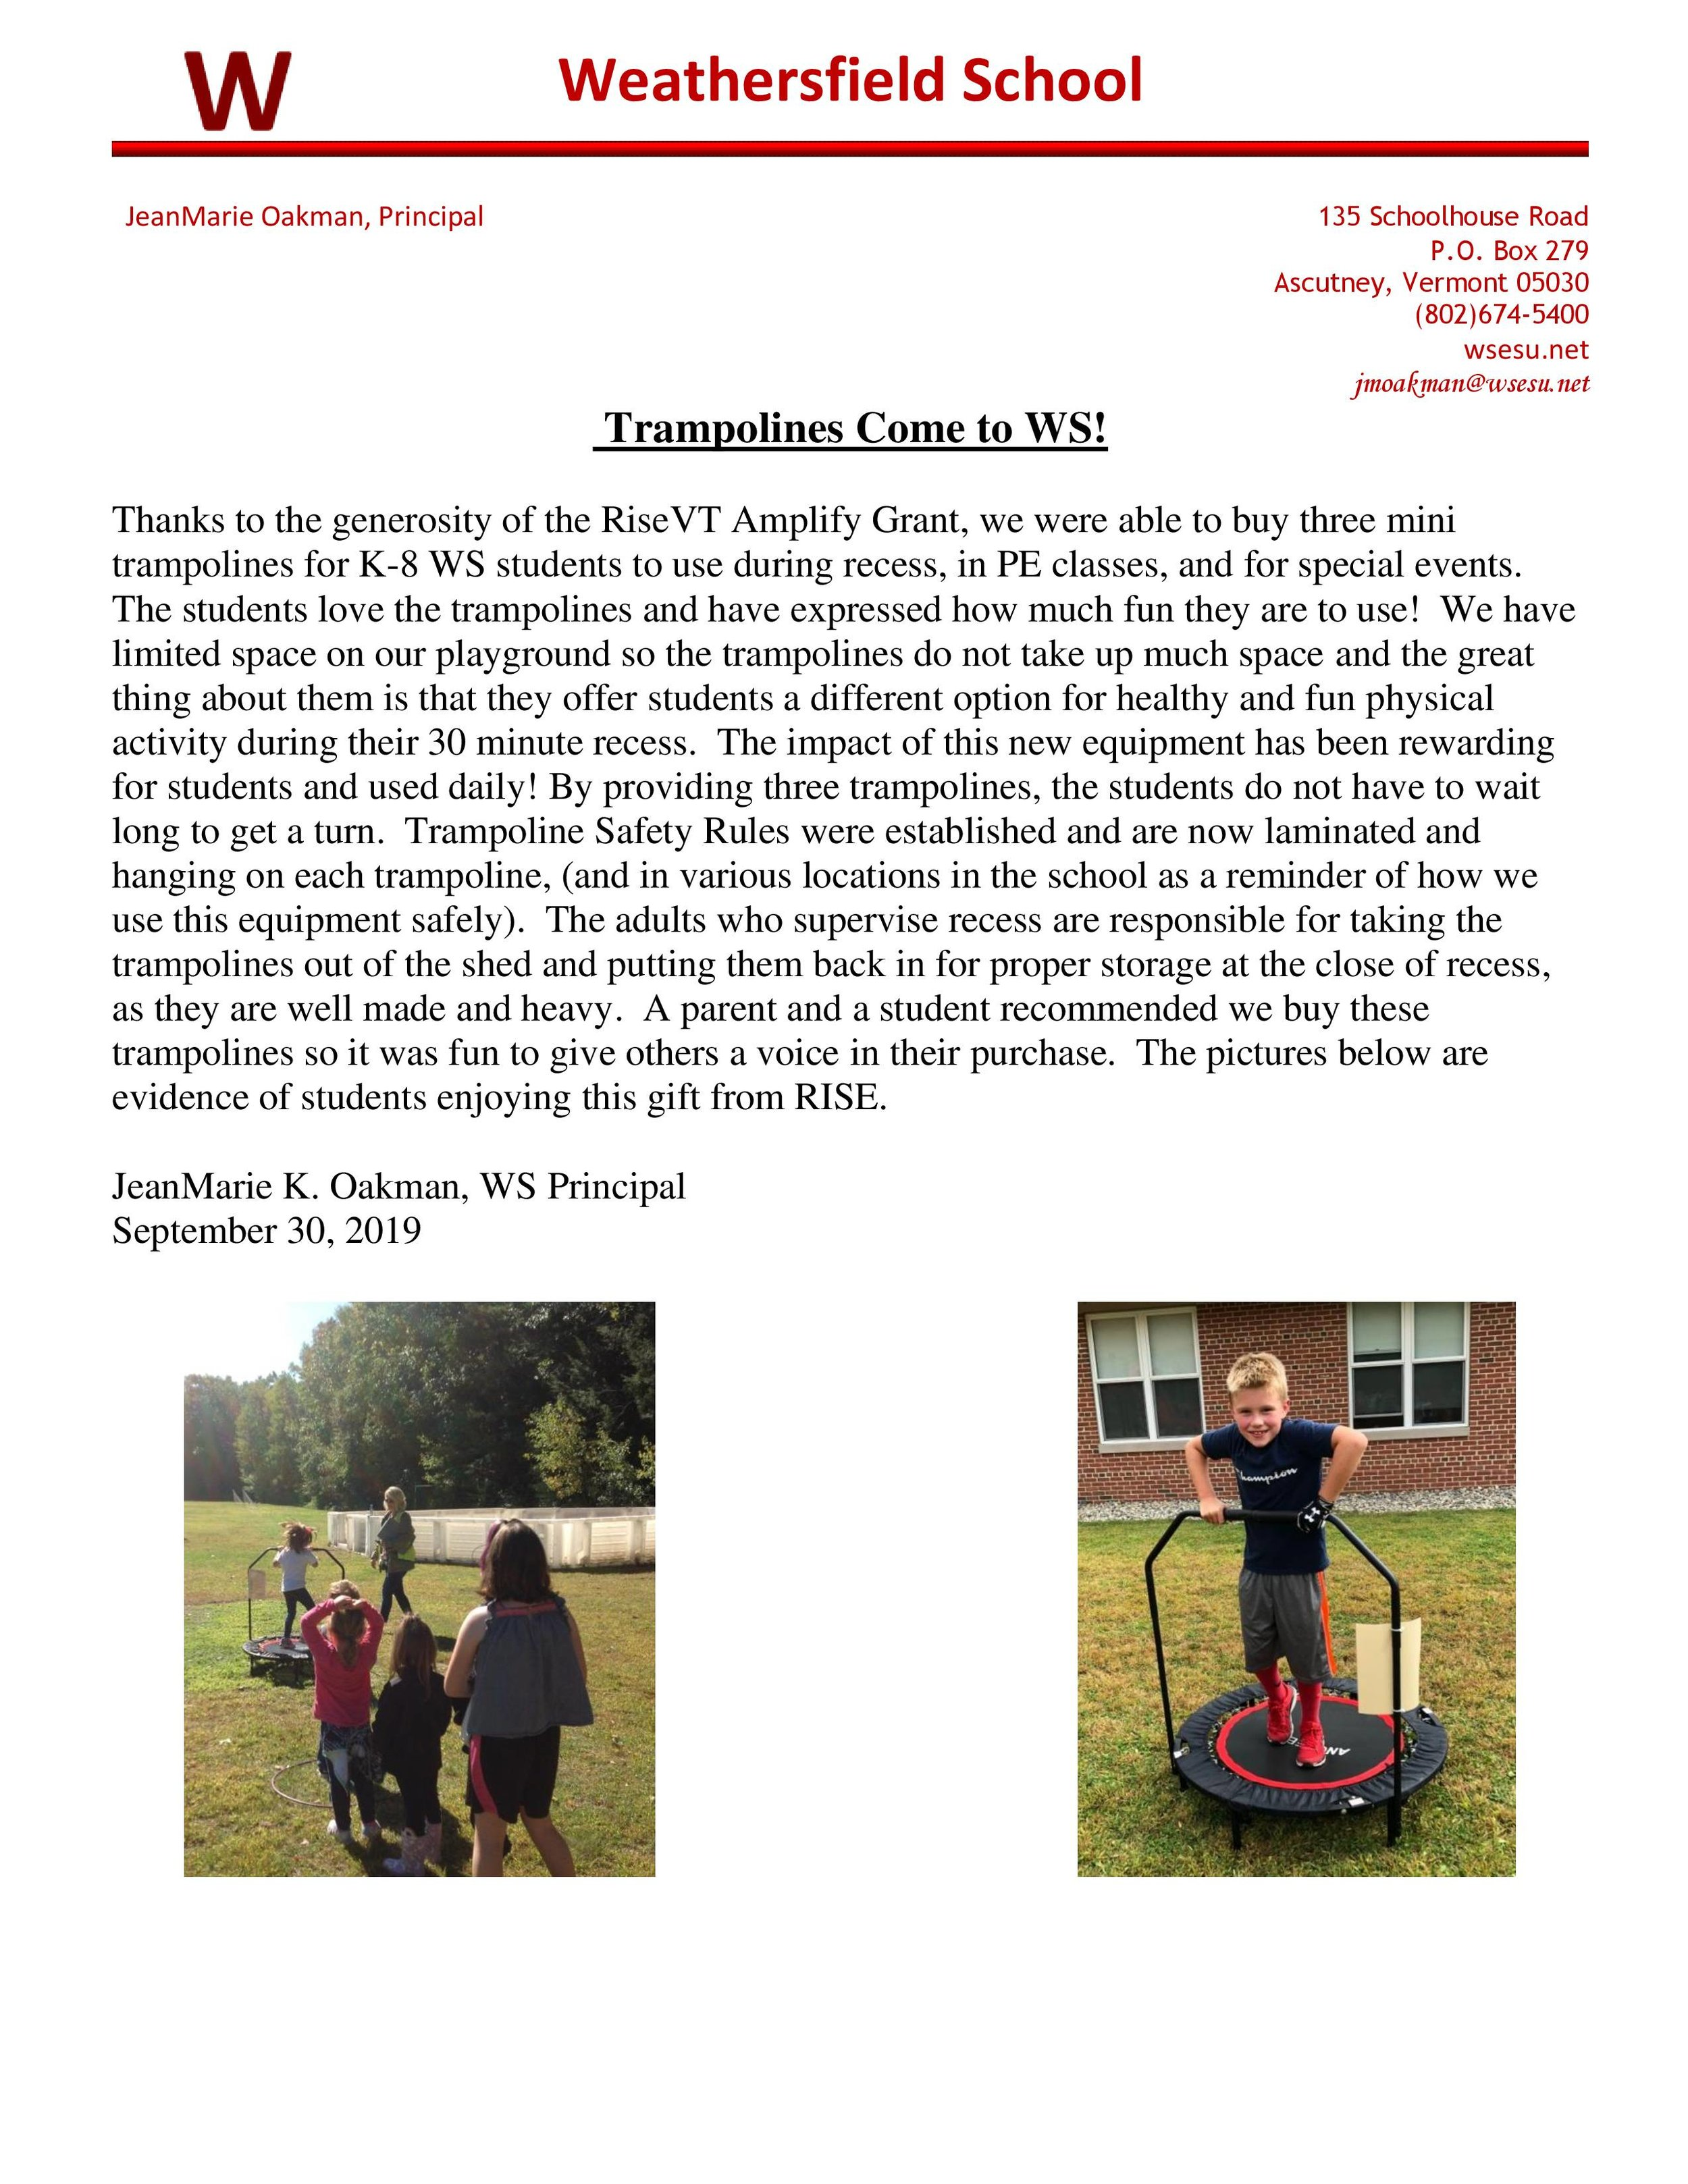 Trampolines Come to WS news release.jpg